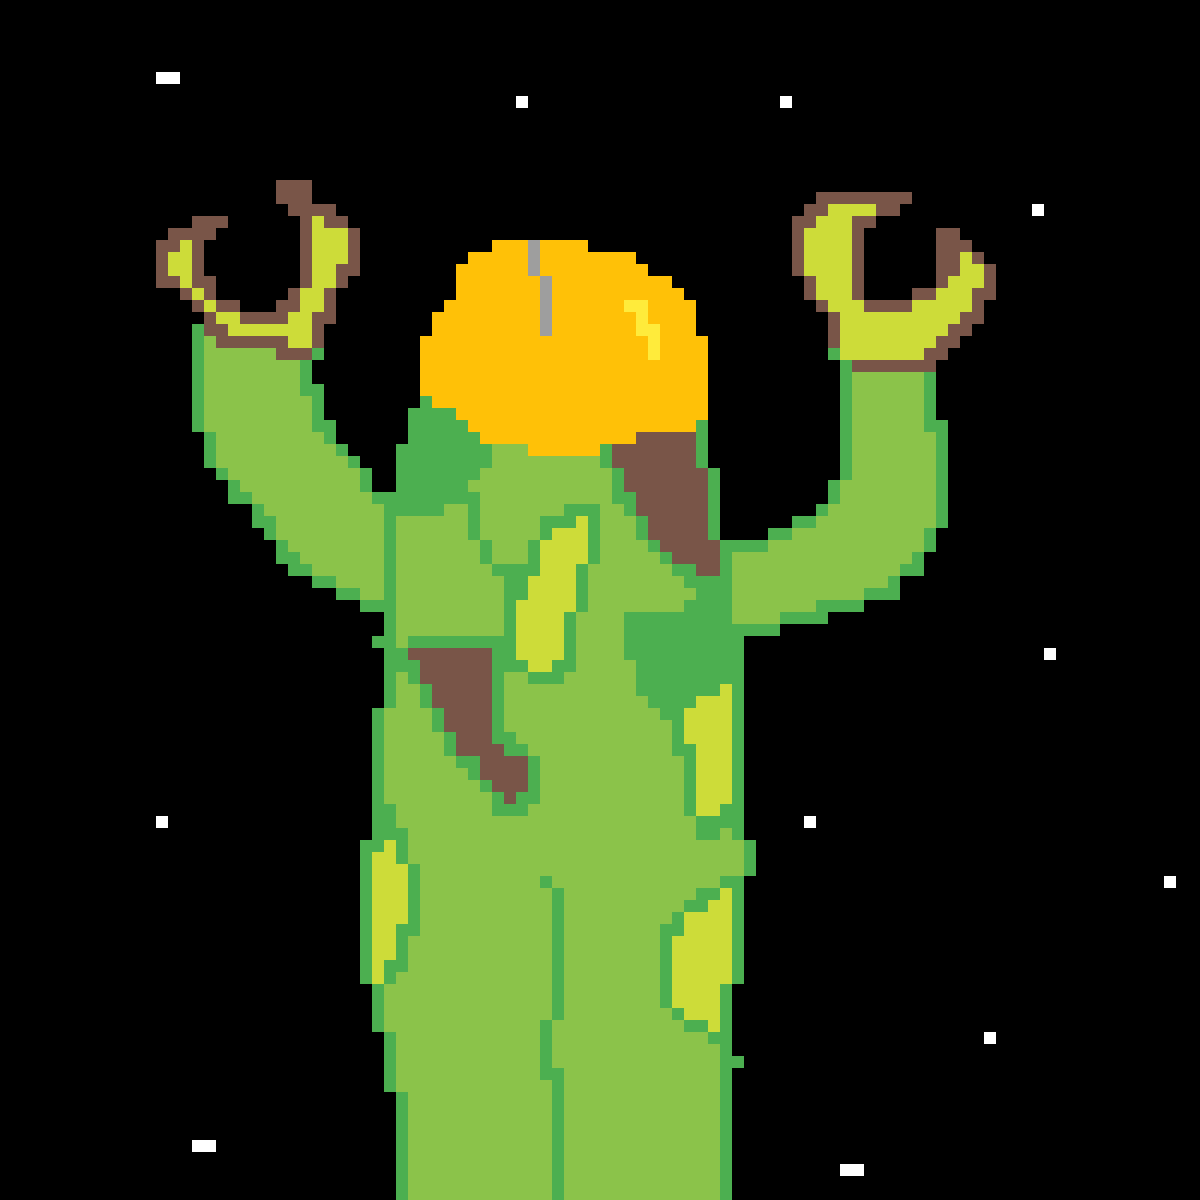 Space man by Death6669